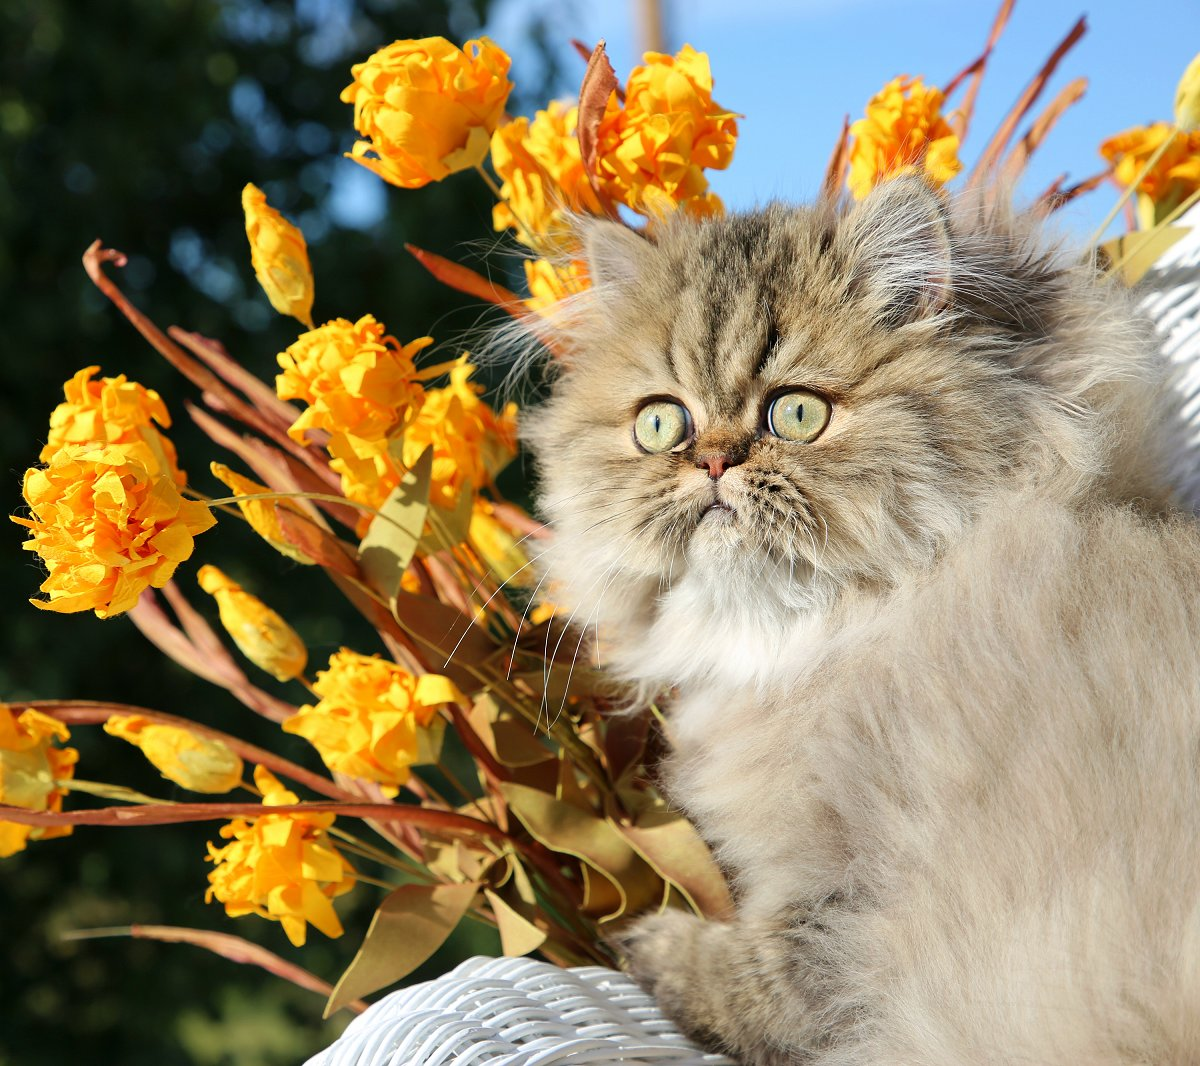 Shaded Golden Tabby Persian Kitten